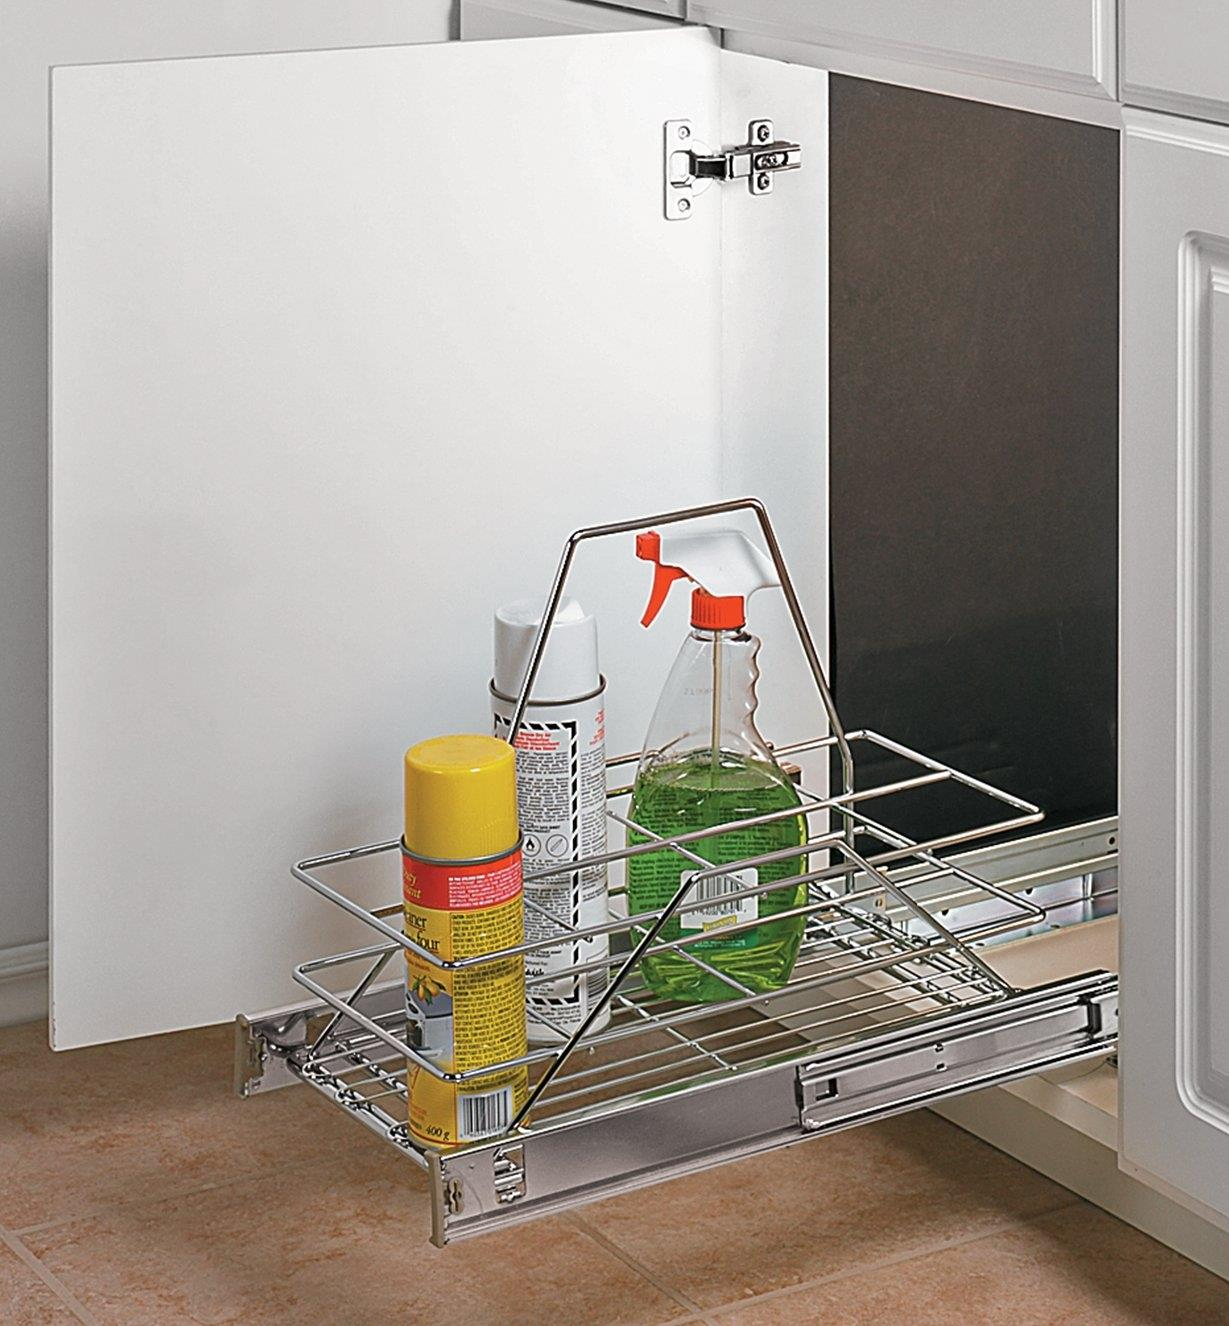 Basket Pullout mounted in a cupboard, holding cleaning supplies